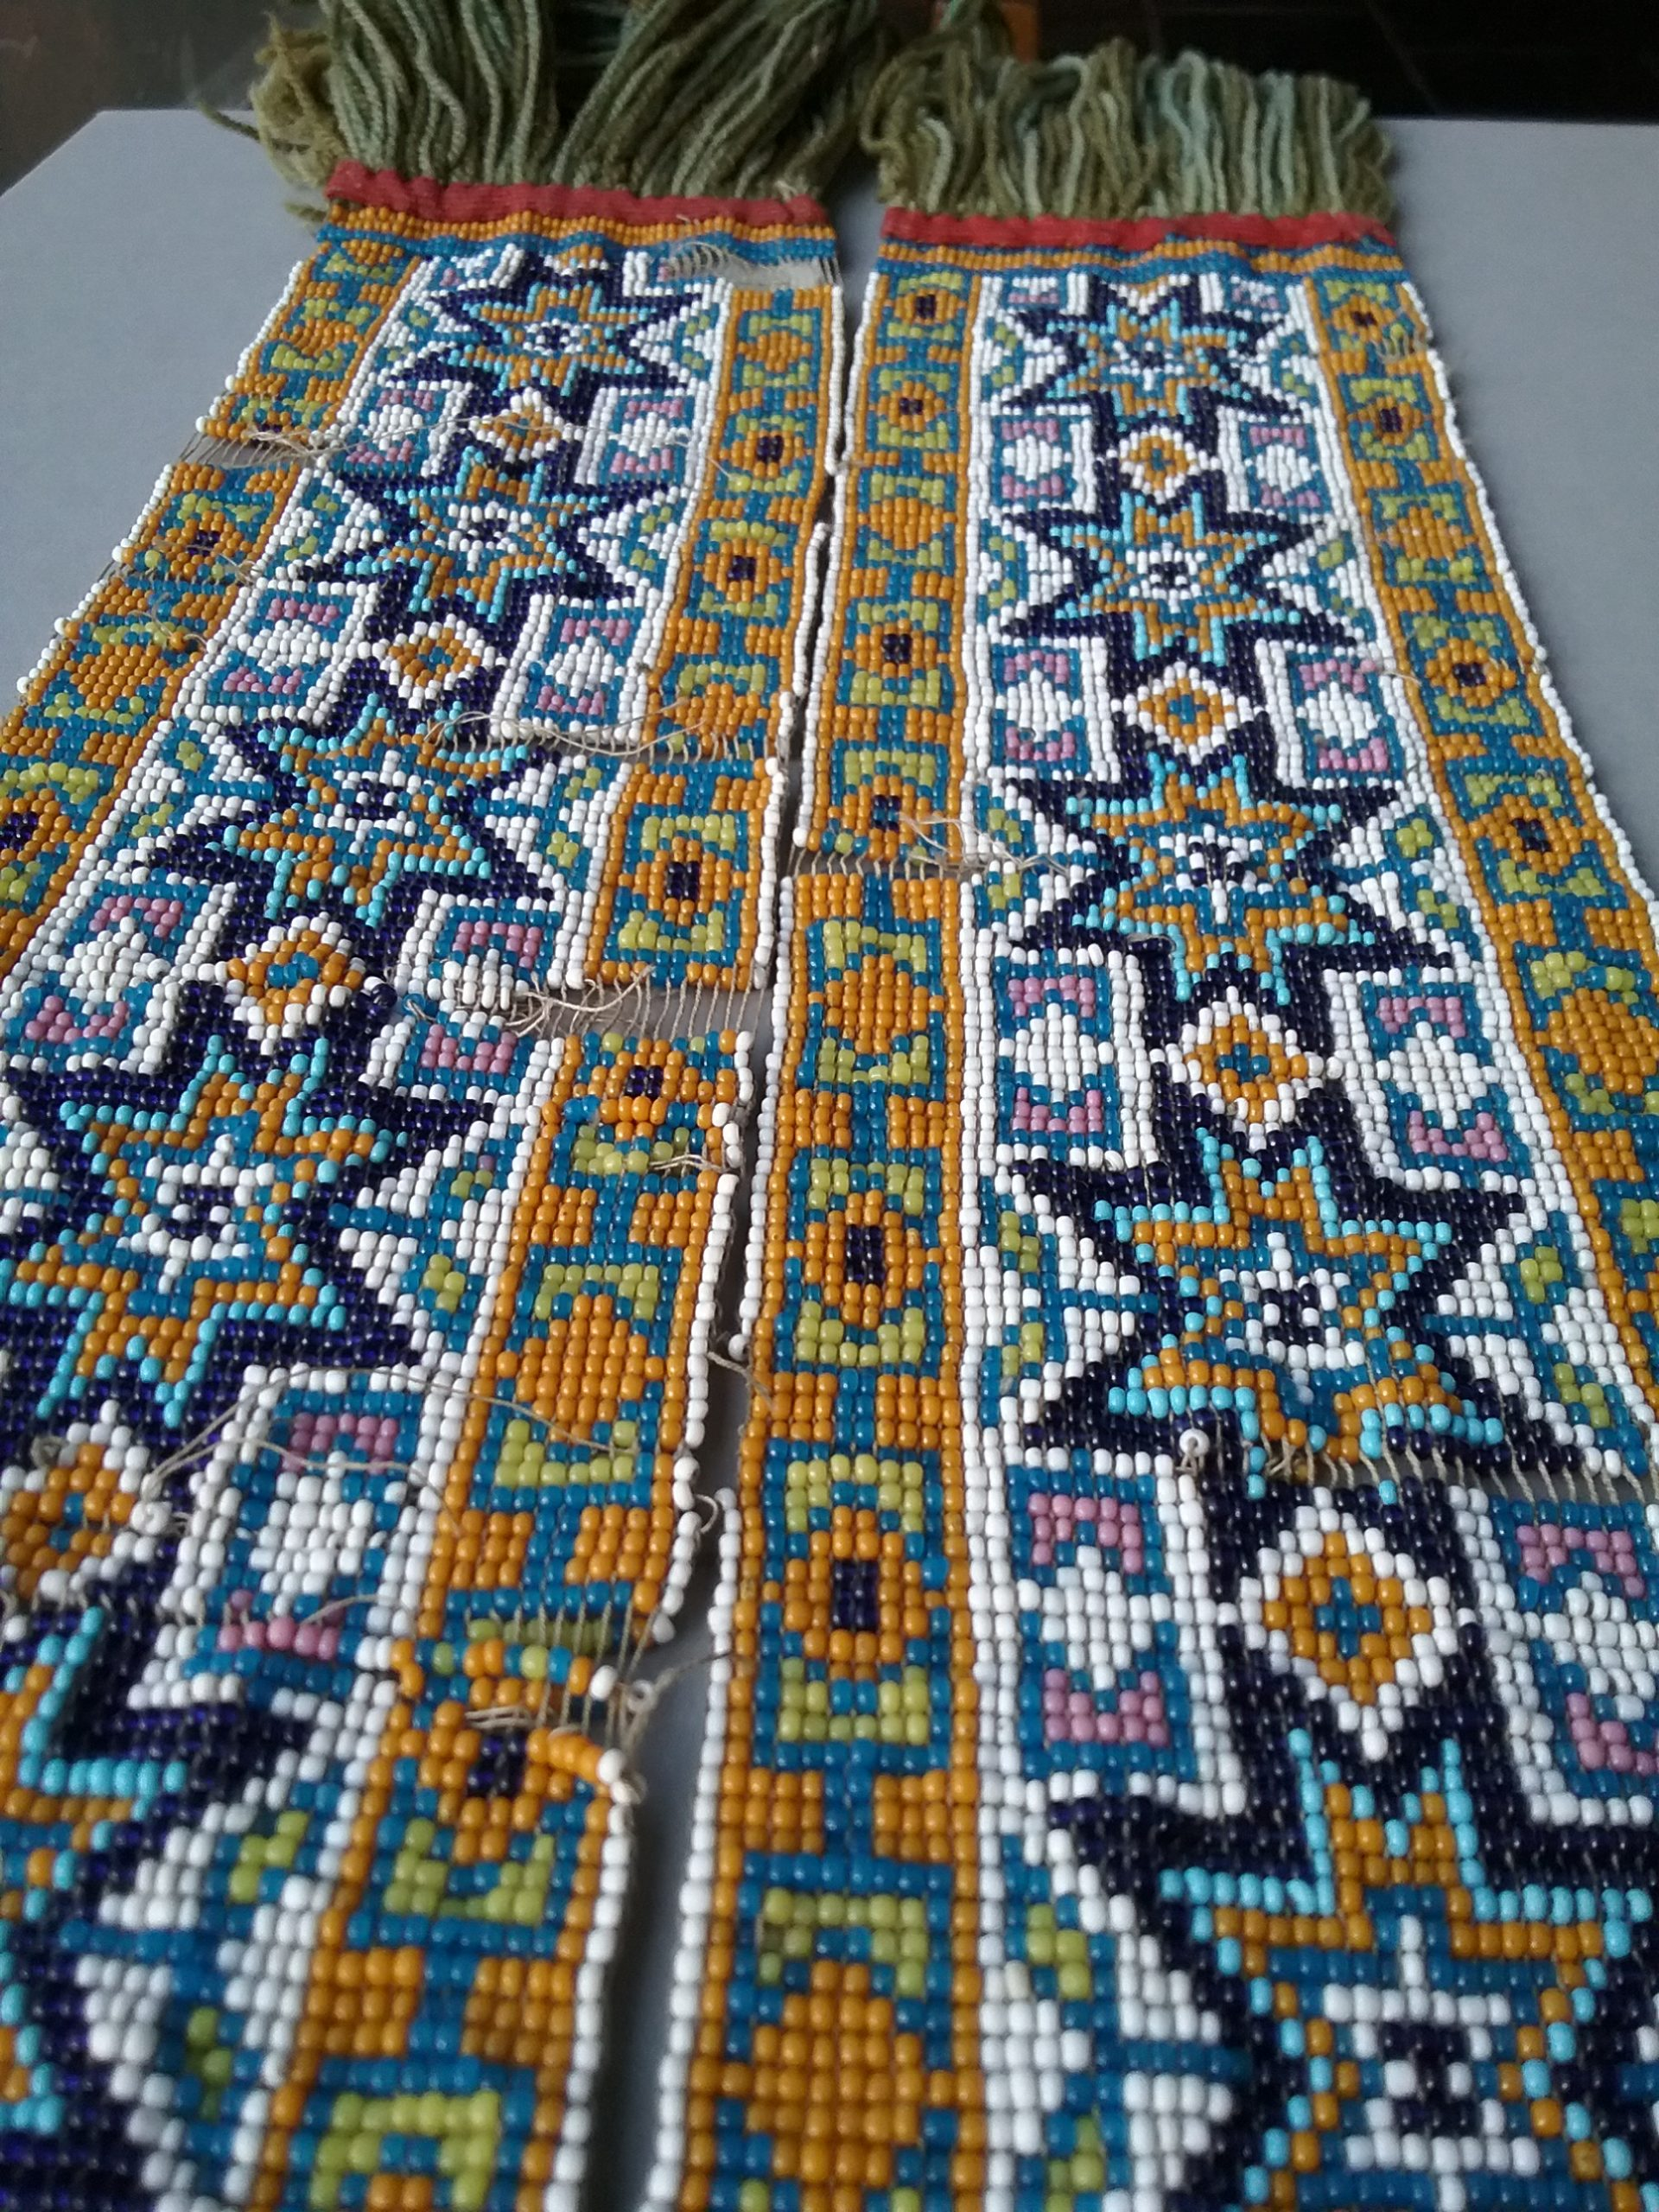 Beaded Leg Bands: These loom-woven beaded leg bands were presented by the Mille Lacs Band of Ojibwe to Nathan Richardson. Donated by Mary (Richardson) Harker. MCHS collections, # 1940.42.12a&b.